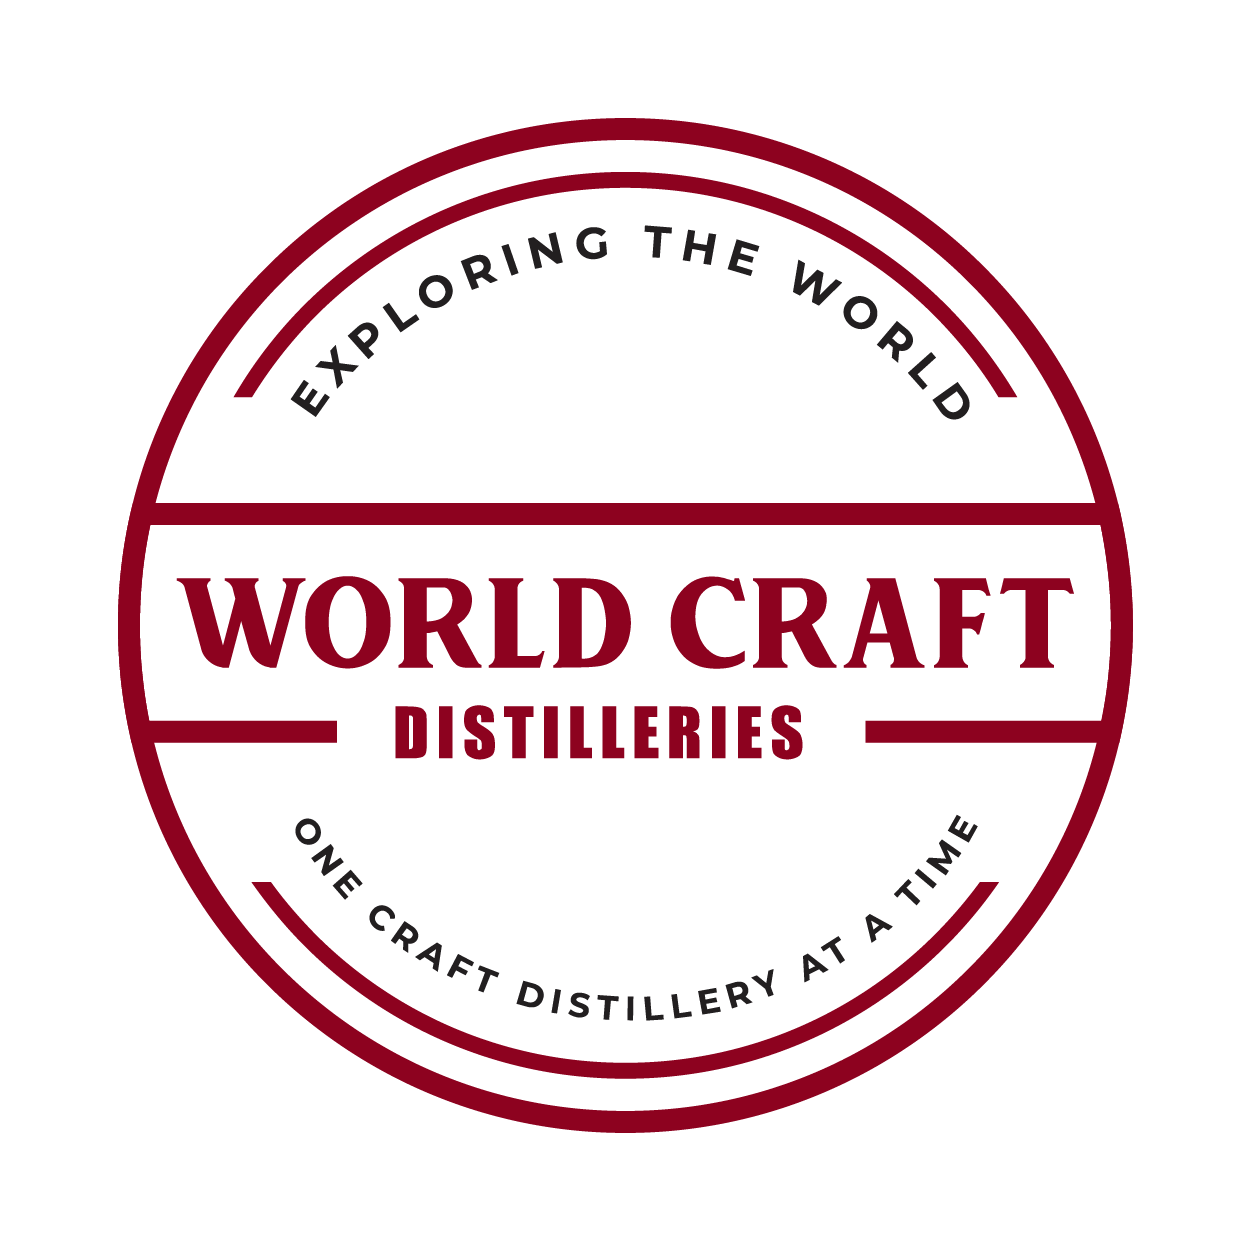 World Craft Distilleries